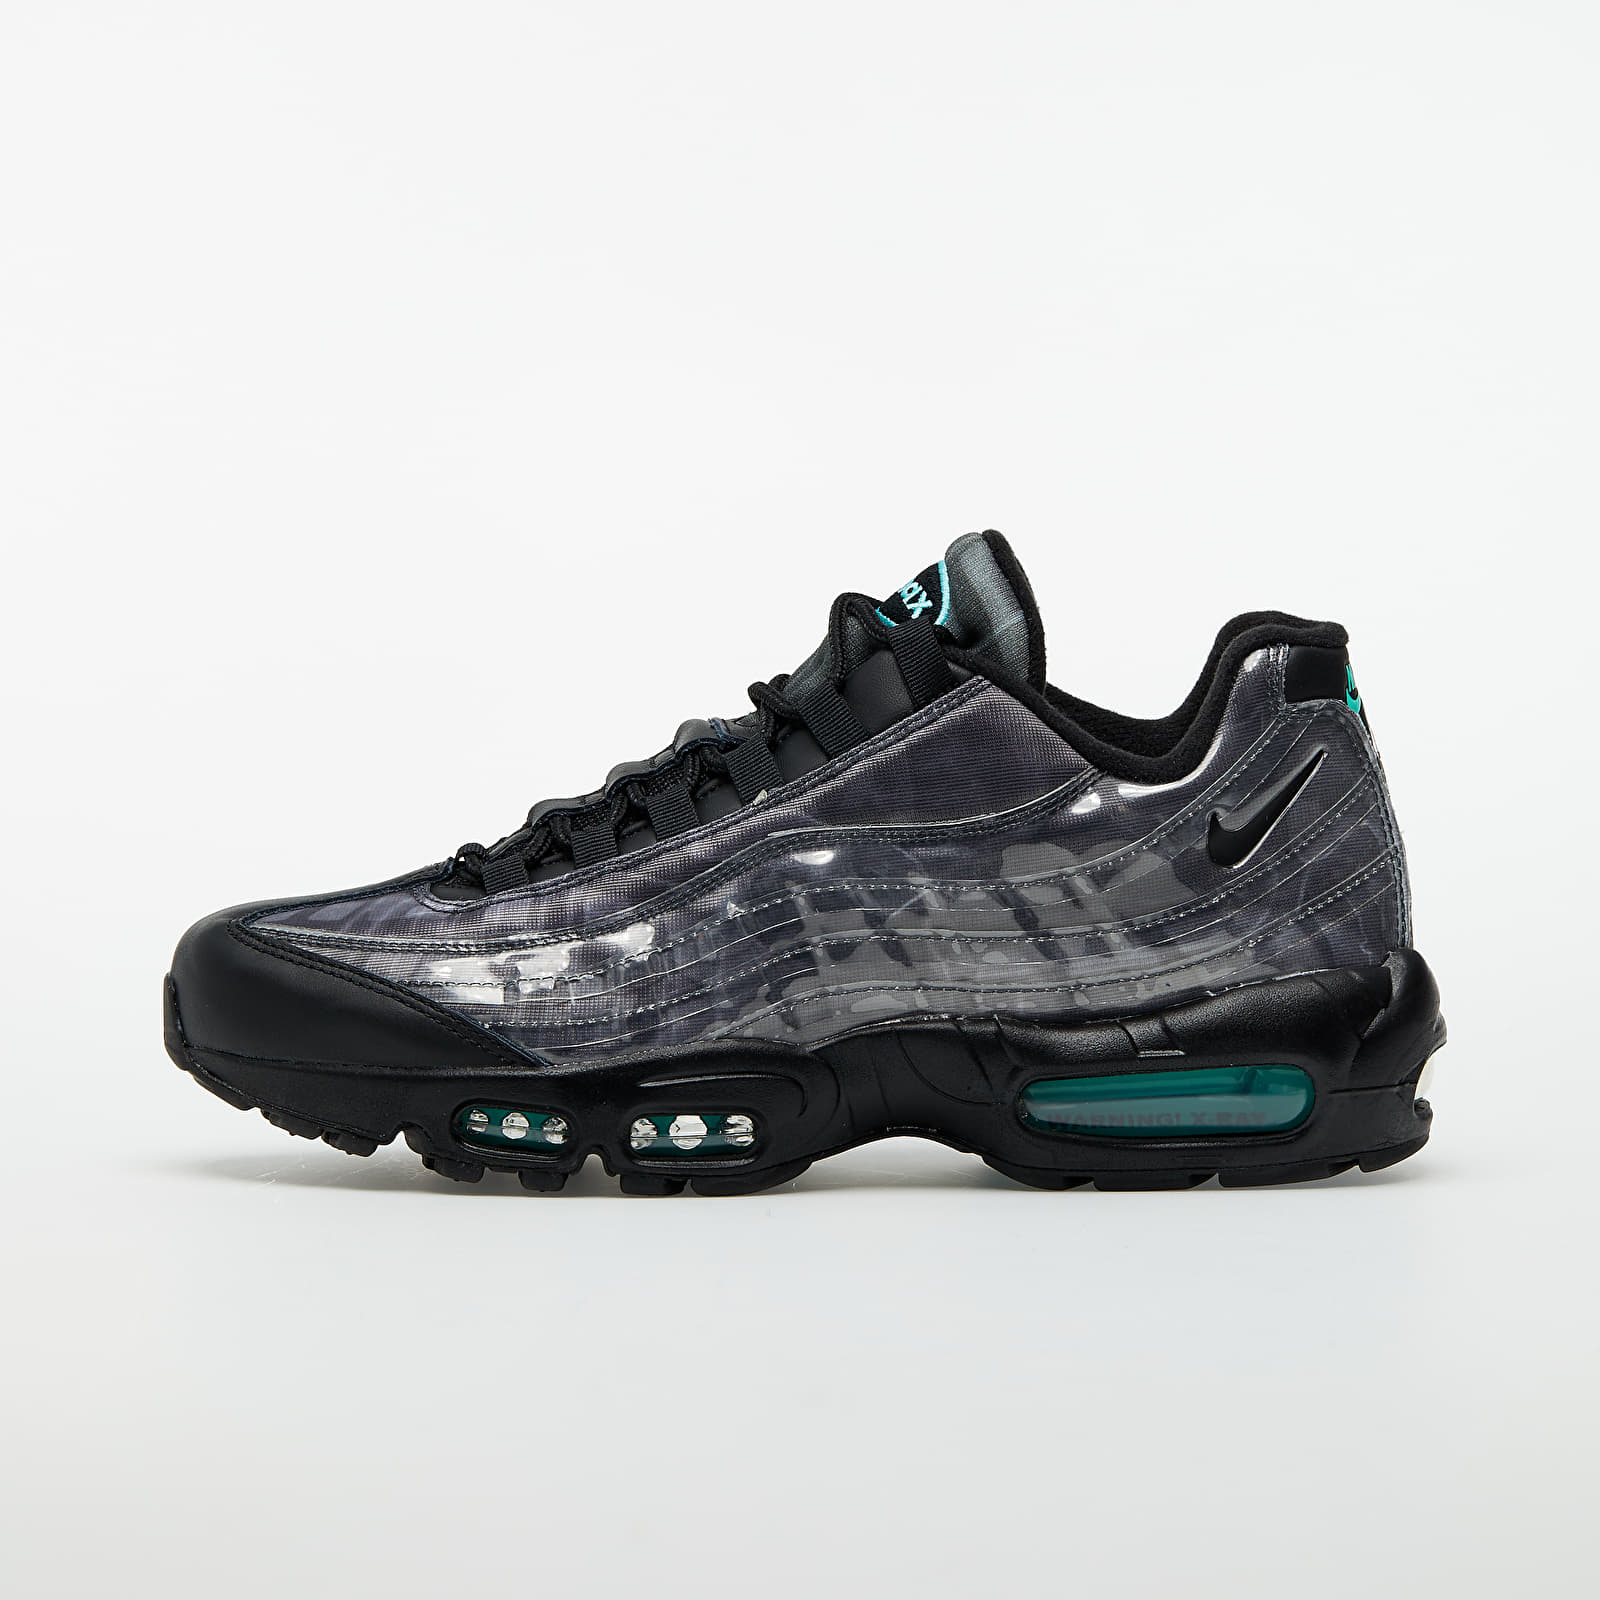 Nike Air Max 95 Black/ Black-Aurora Green-Smoke Grey EUR 42